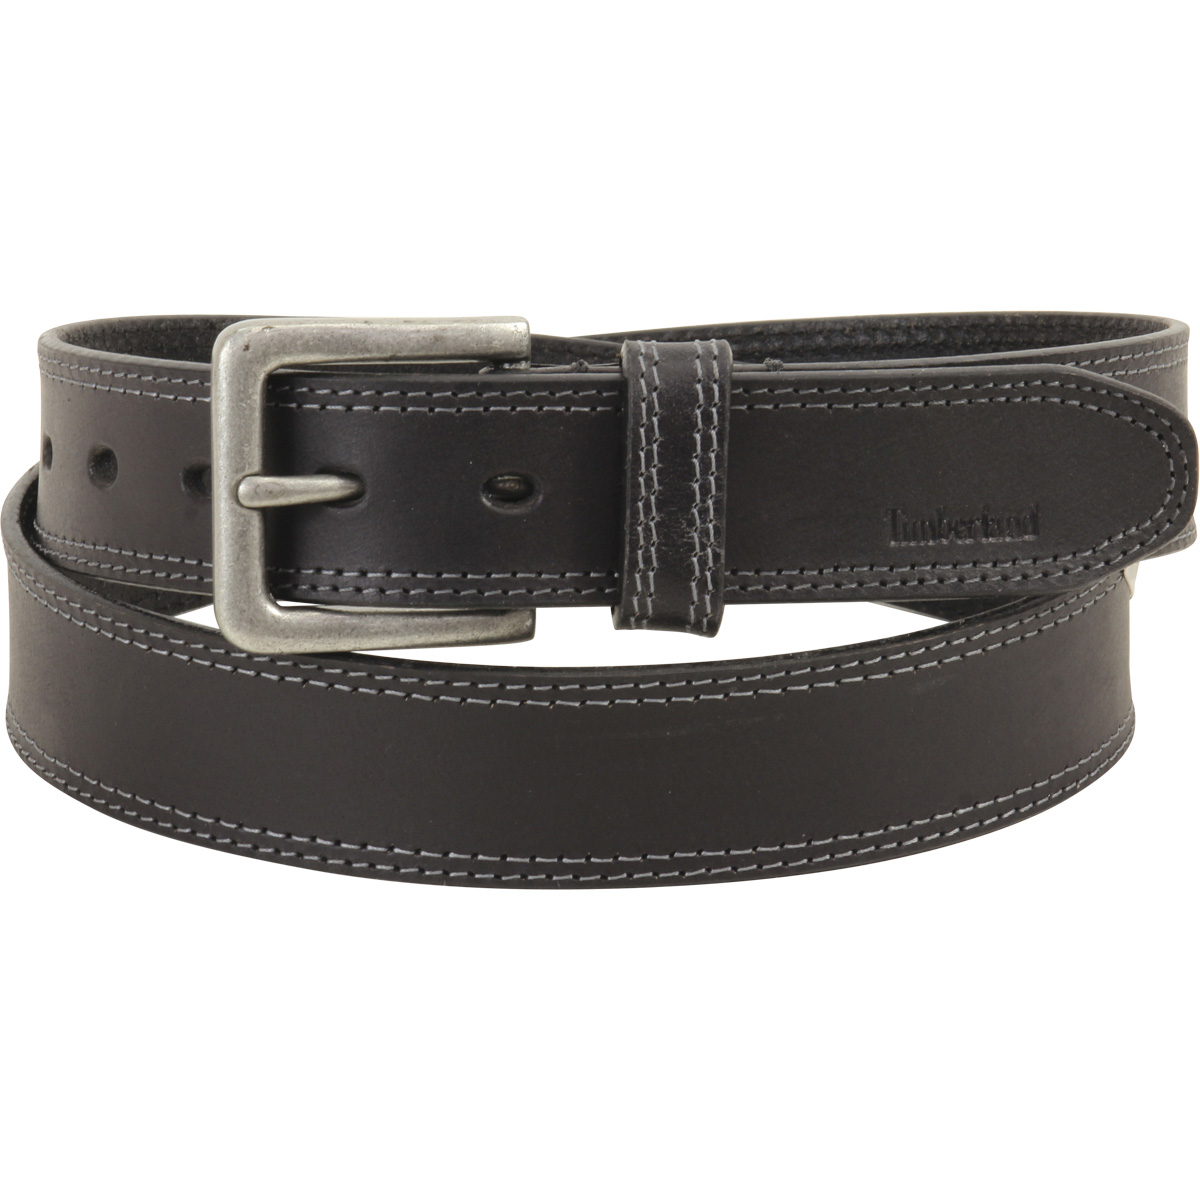 Timberland Men's Black Genuine Boot Leather Belt by Timberland